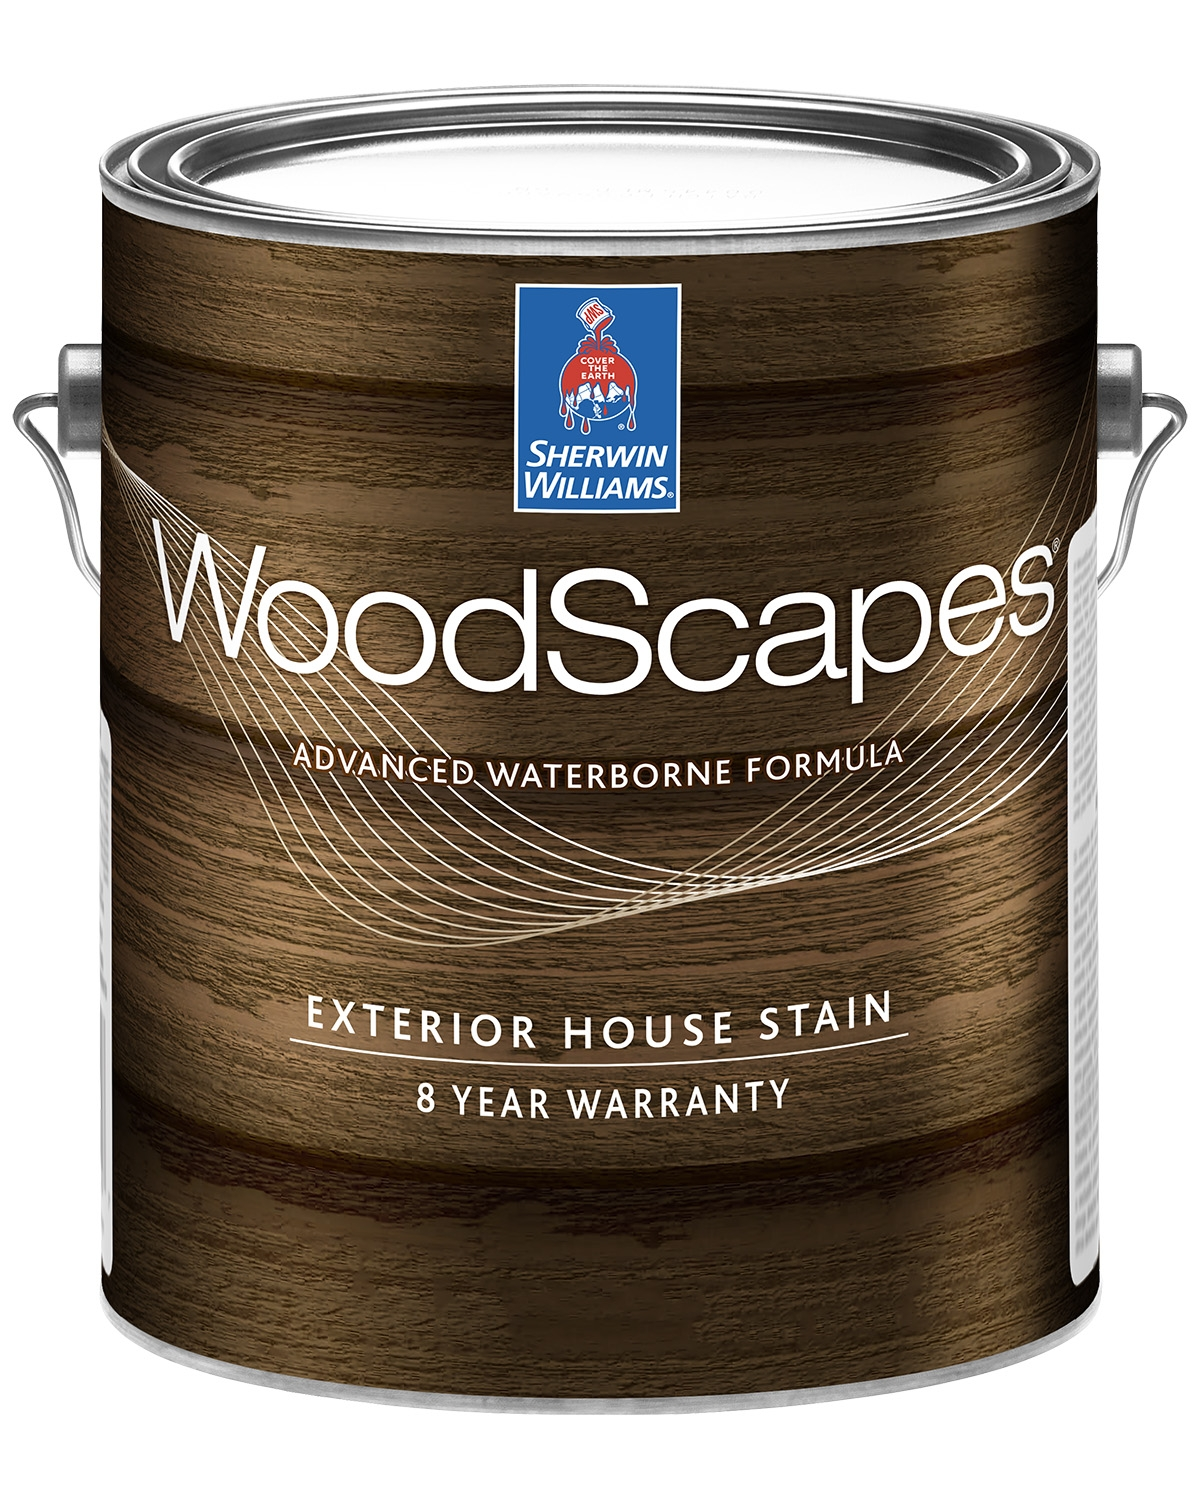 Woodscapes Exterior Acrylic Solid Color House Stain Sherwin Williams